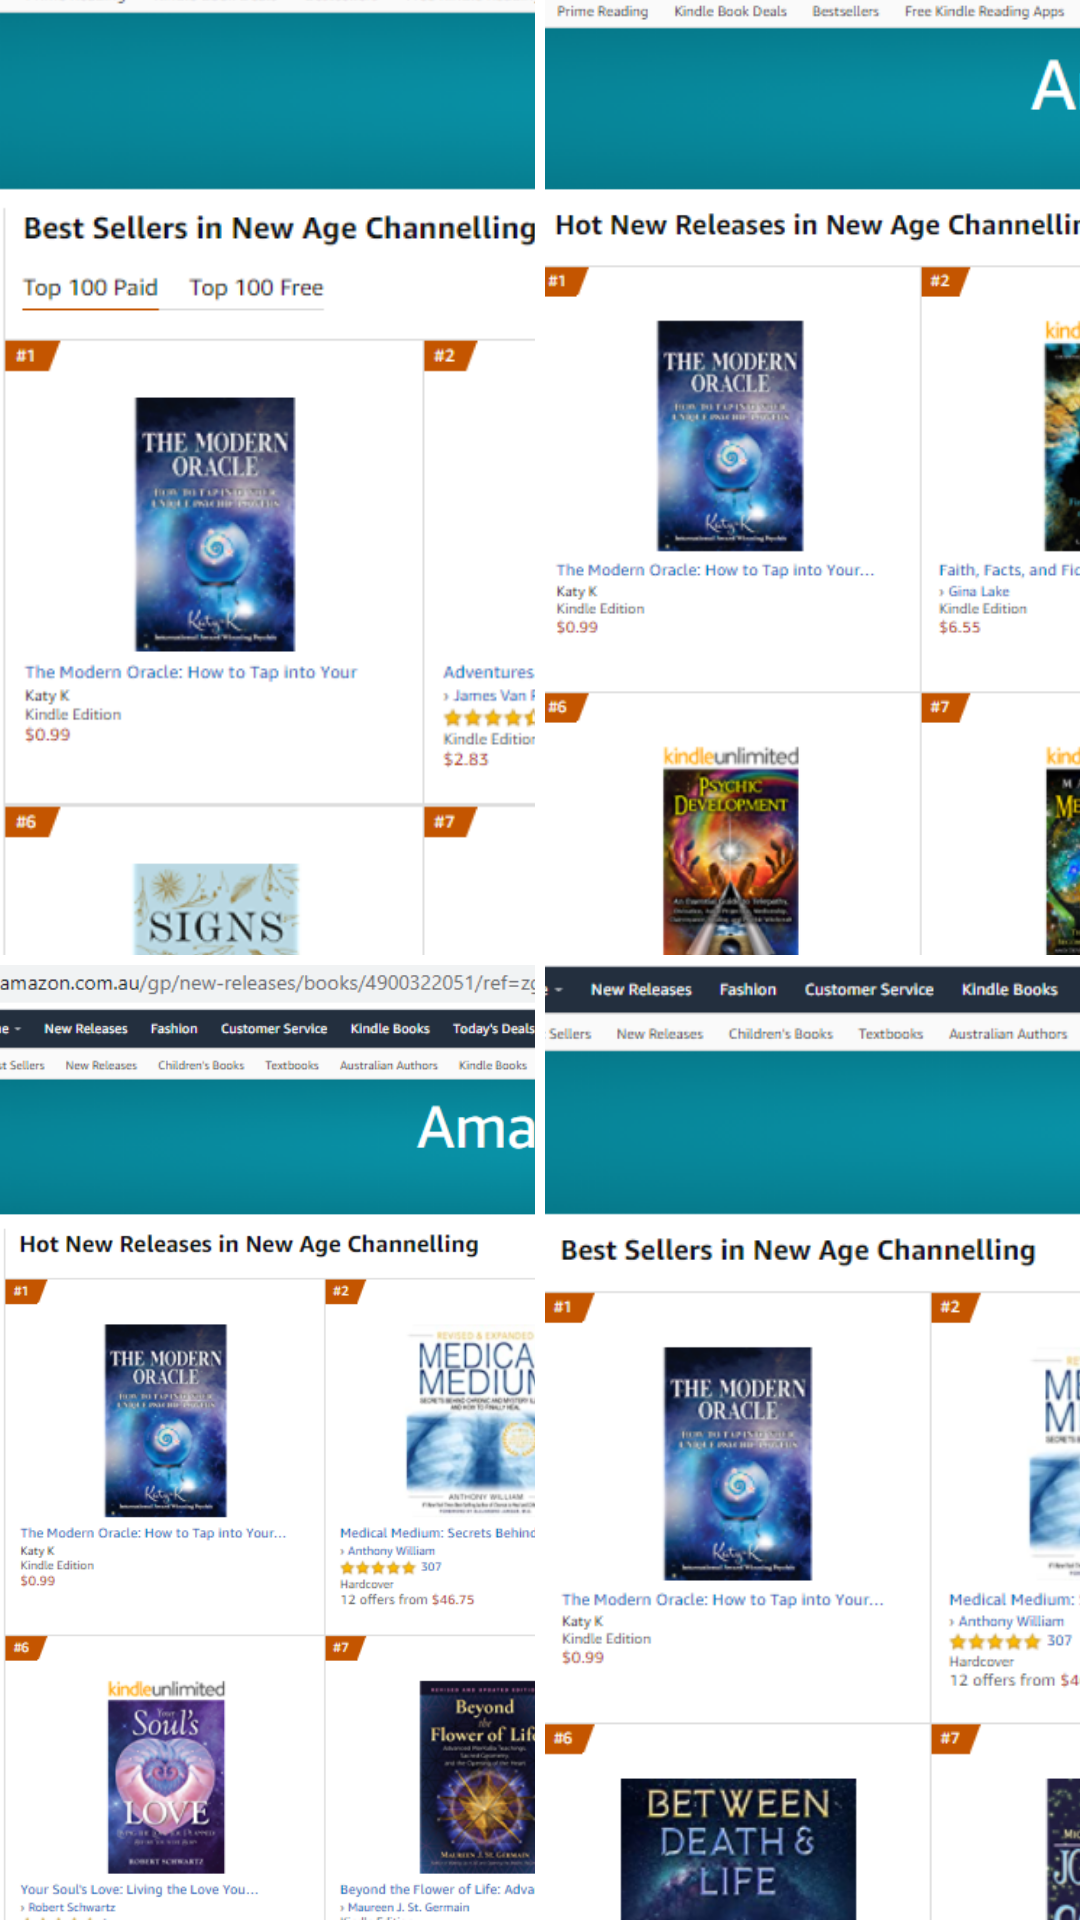 number 1 best seller on Amazon - The Modern Oracle book